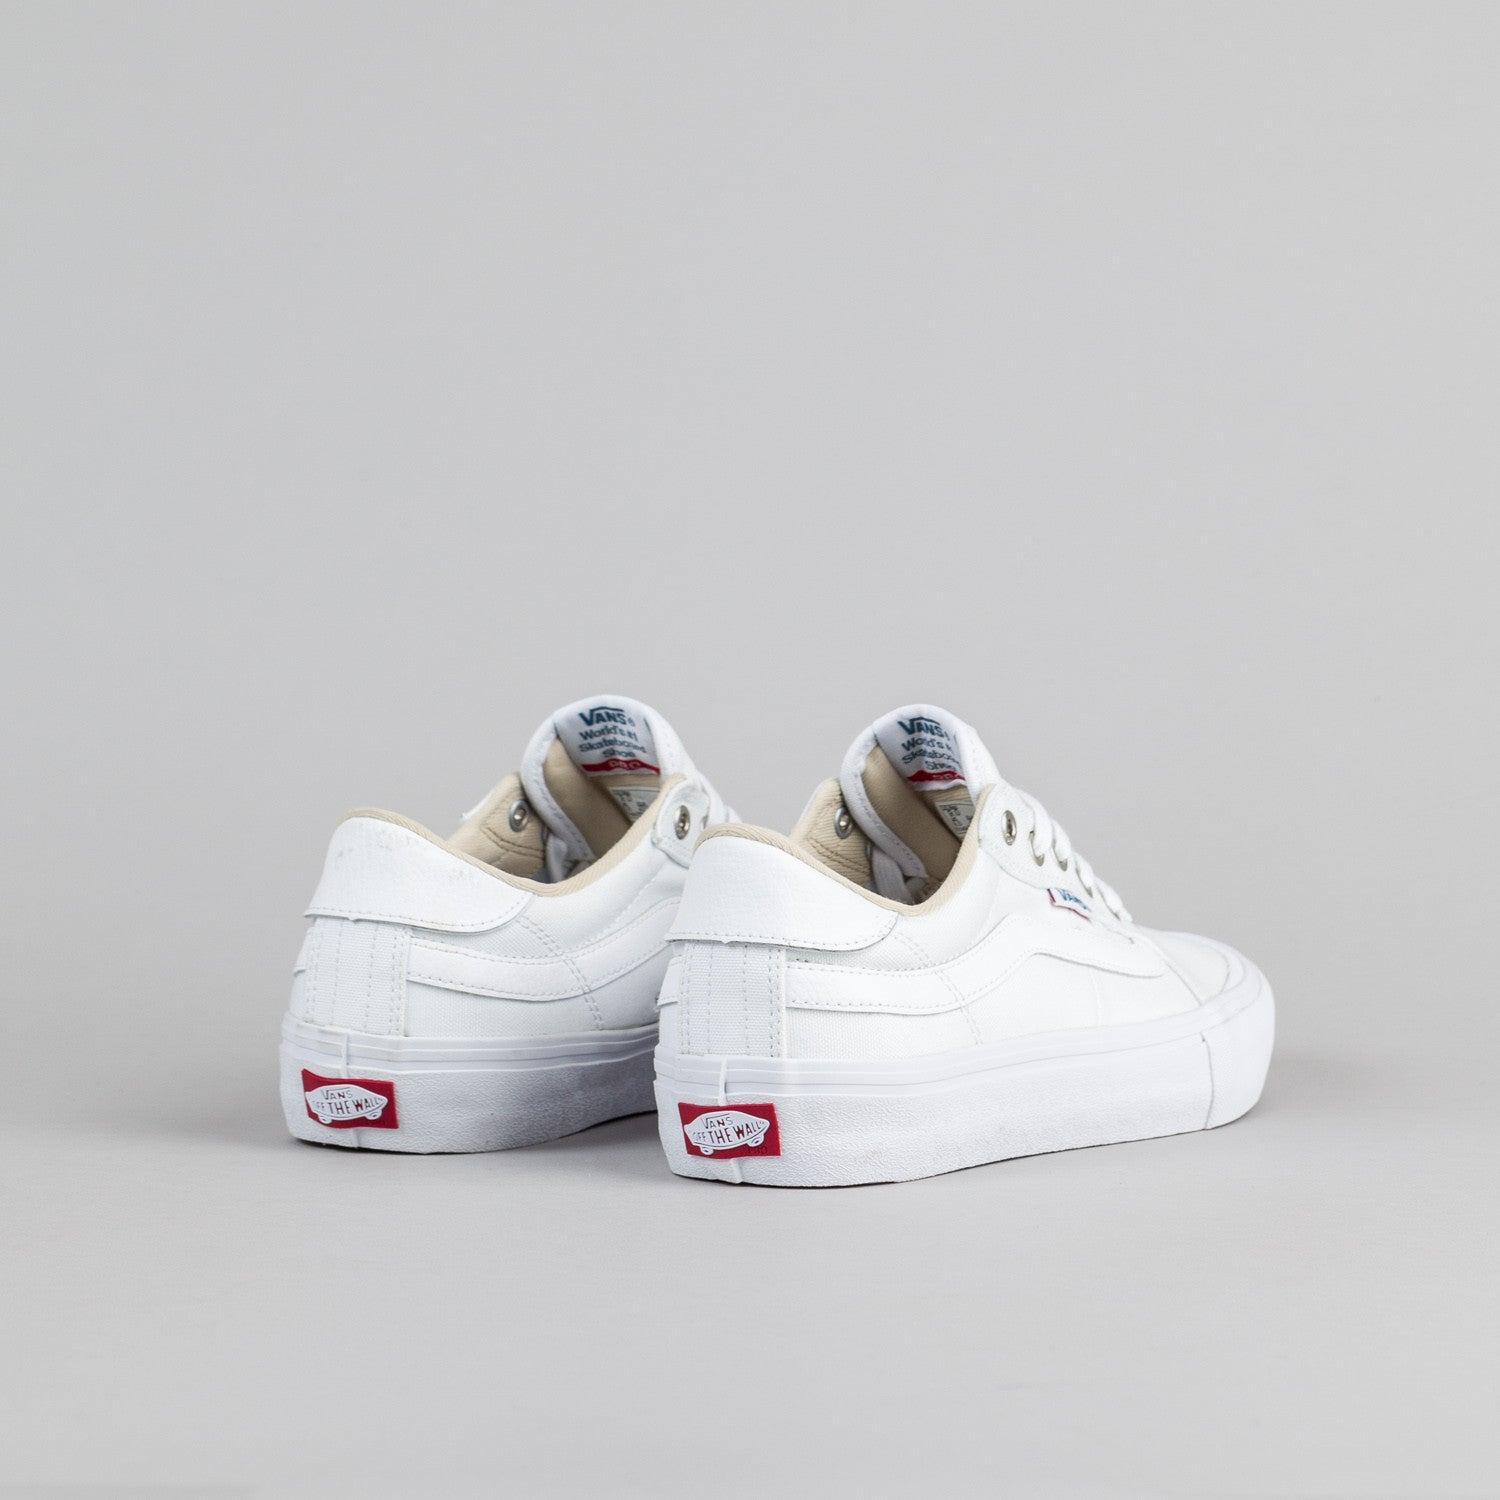 Vans Style 112 Pro Shoes - White / White